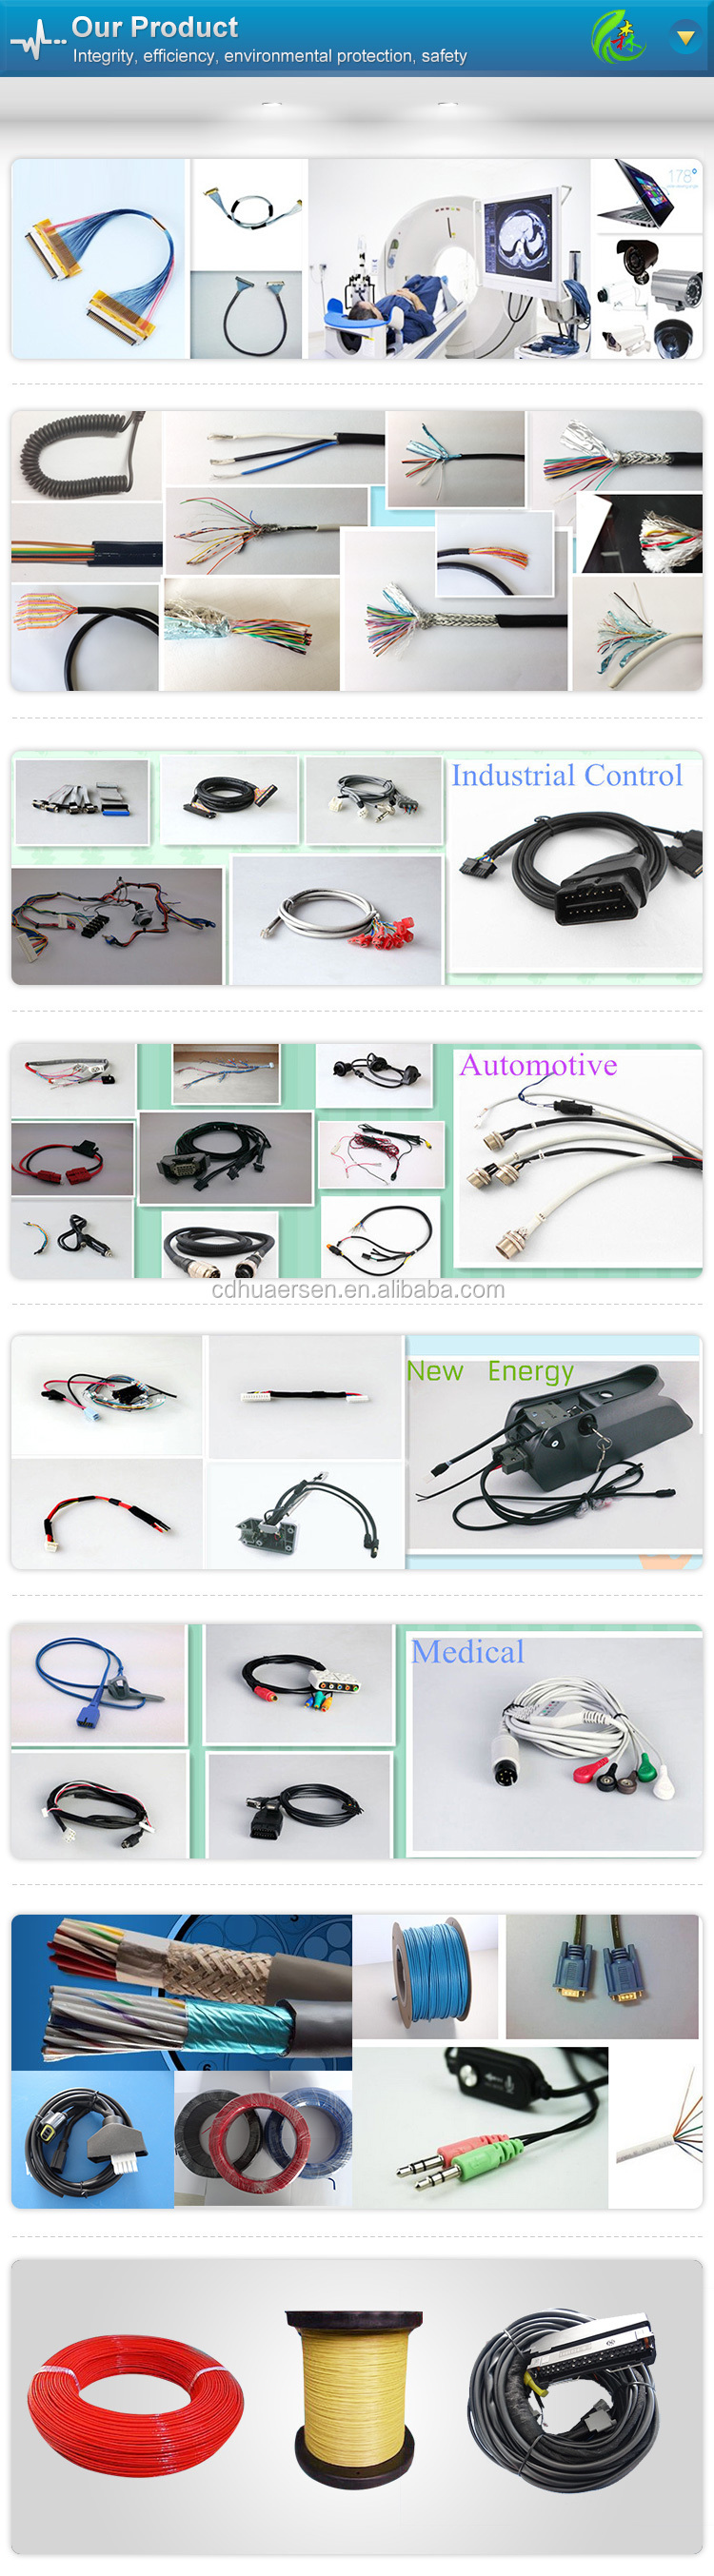 China Manufacturing Pin Connector Auto Gas Mp48 Sequential Wiring Harness Protection 02 06